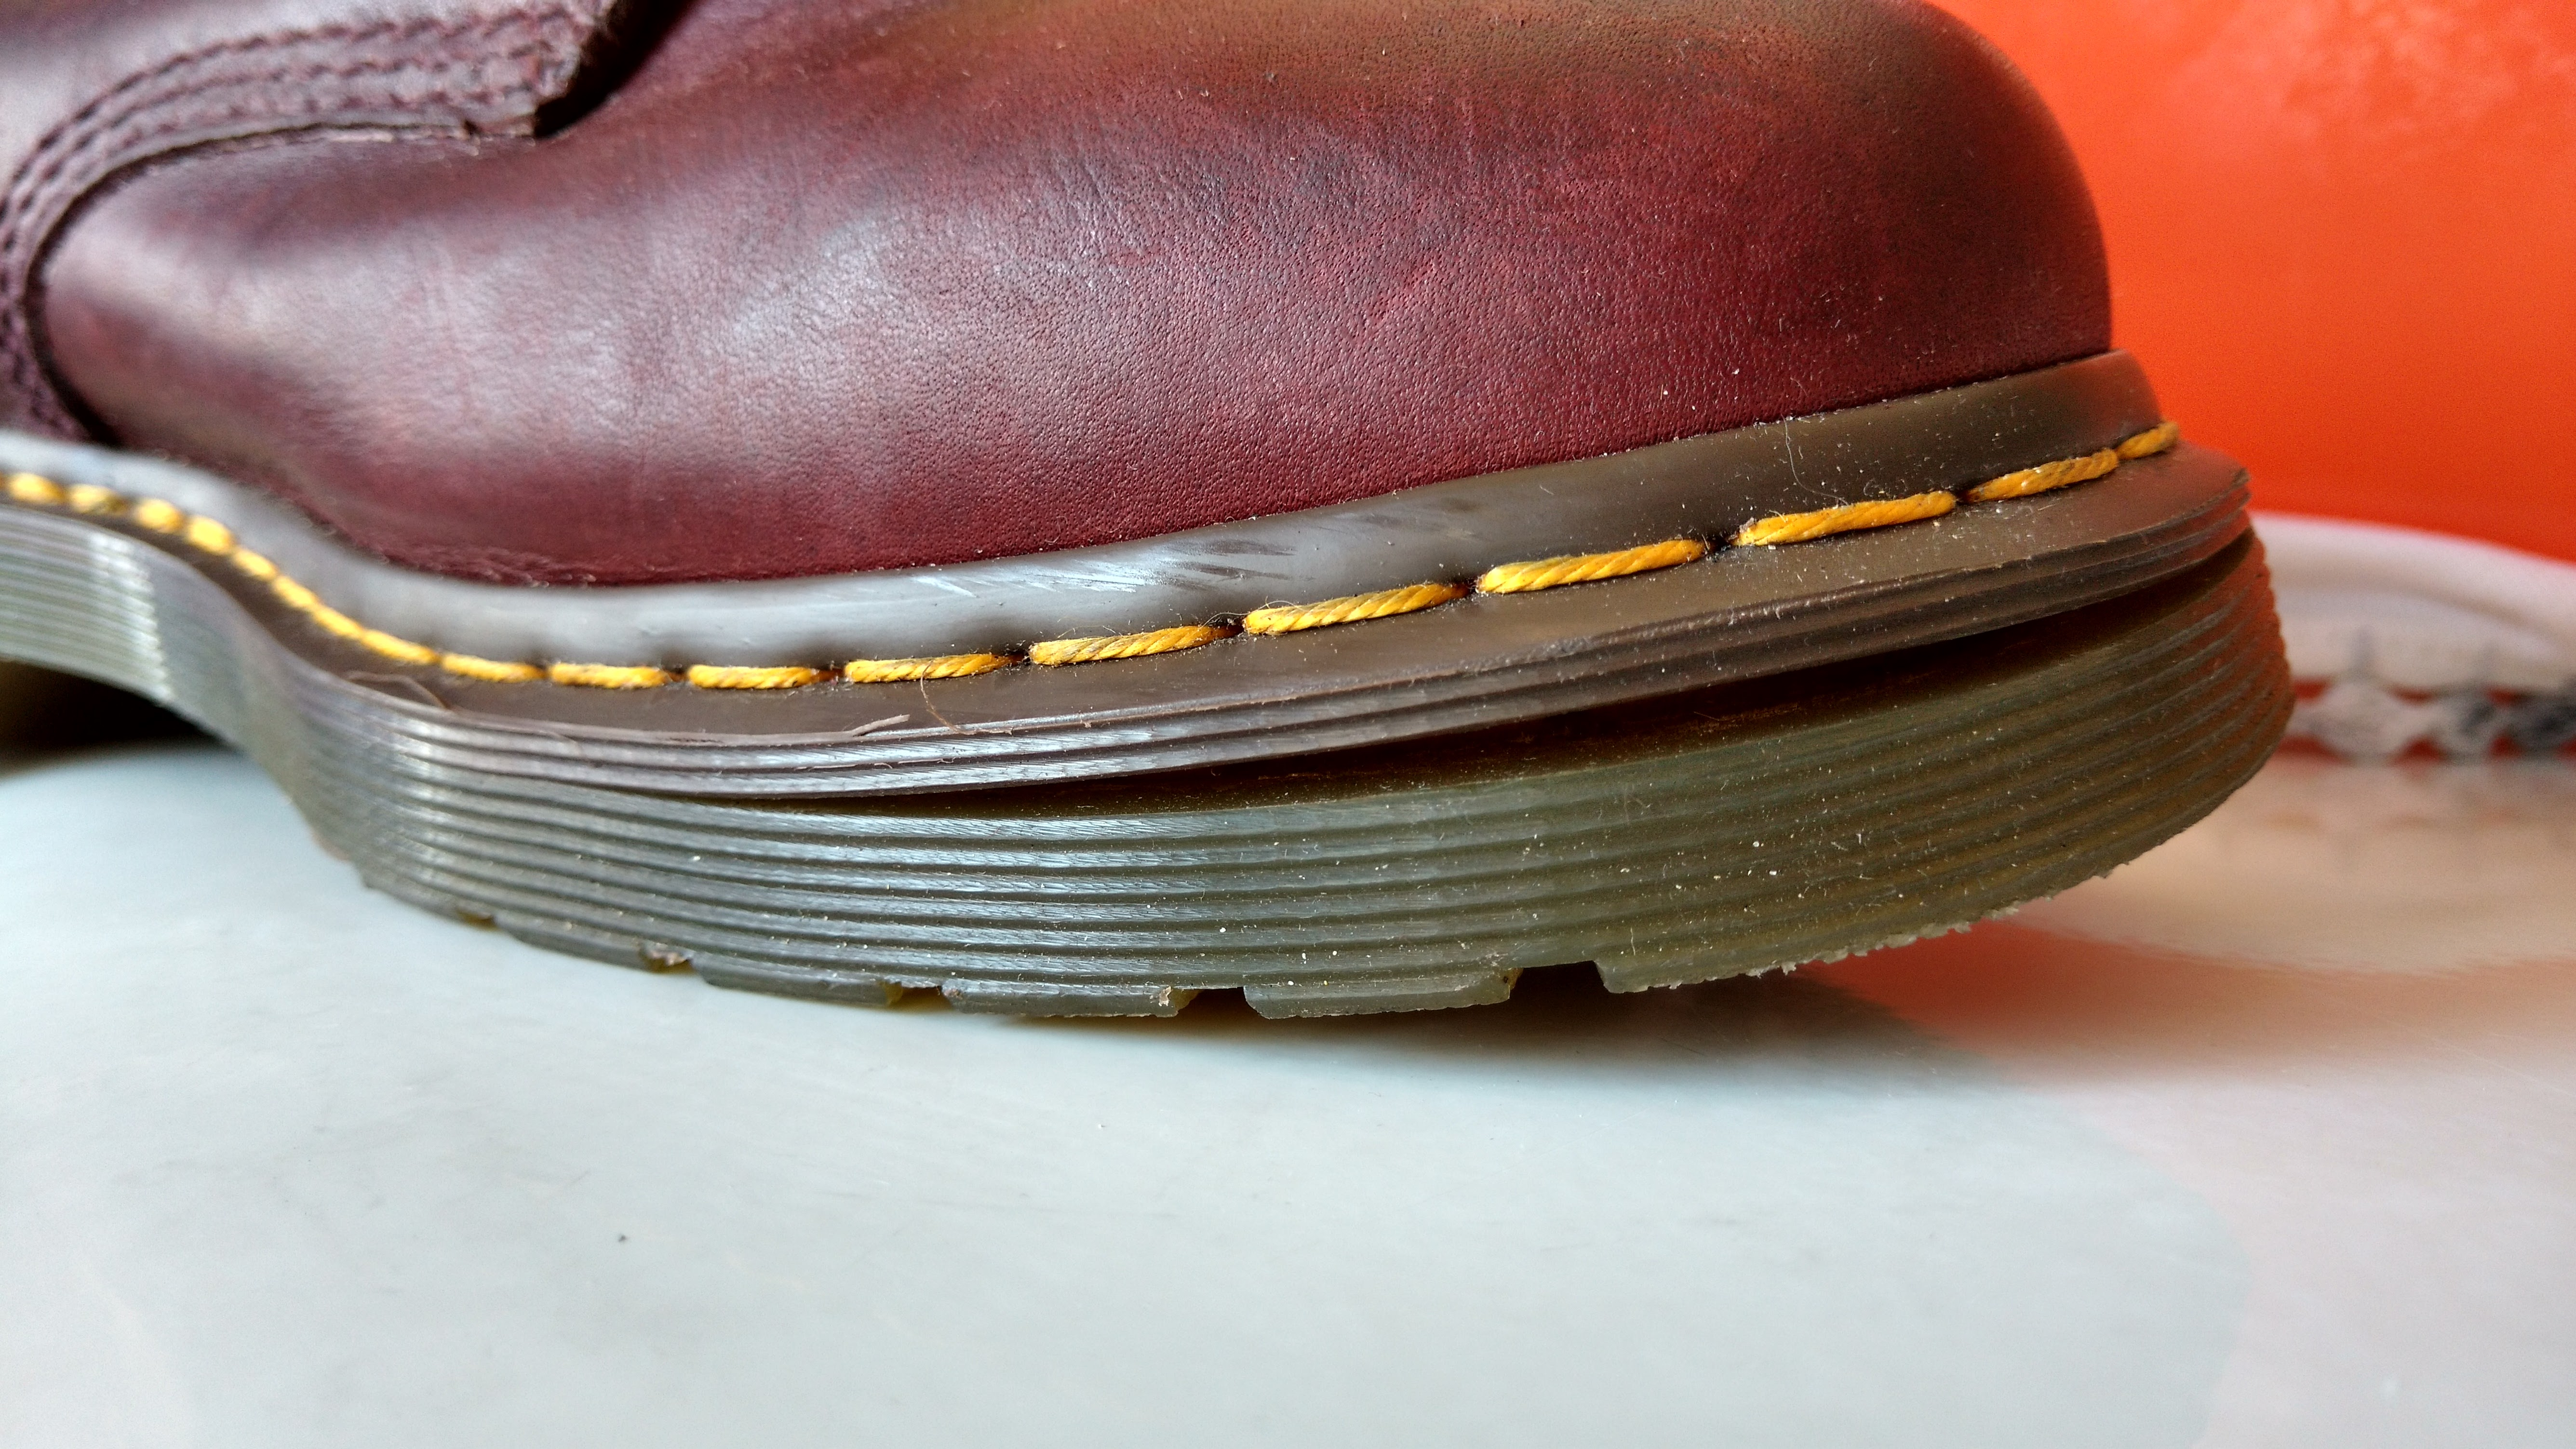 38637aa3968d I think this is where the sole was supposed to be heat-sealed together with  the upper so I am guessing this is a manufacturing defect. You can watch the  ...